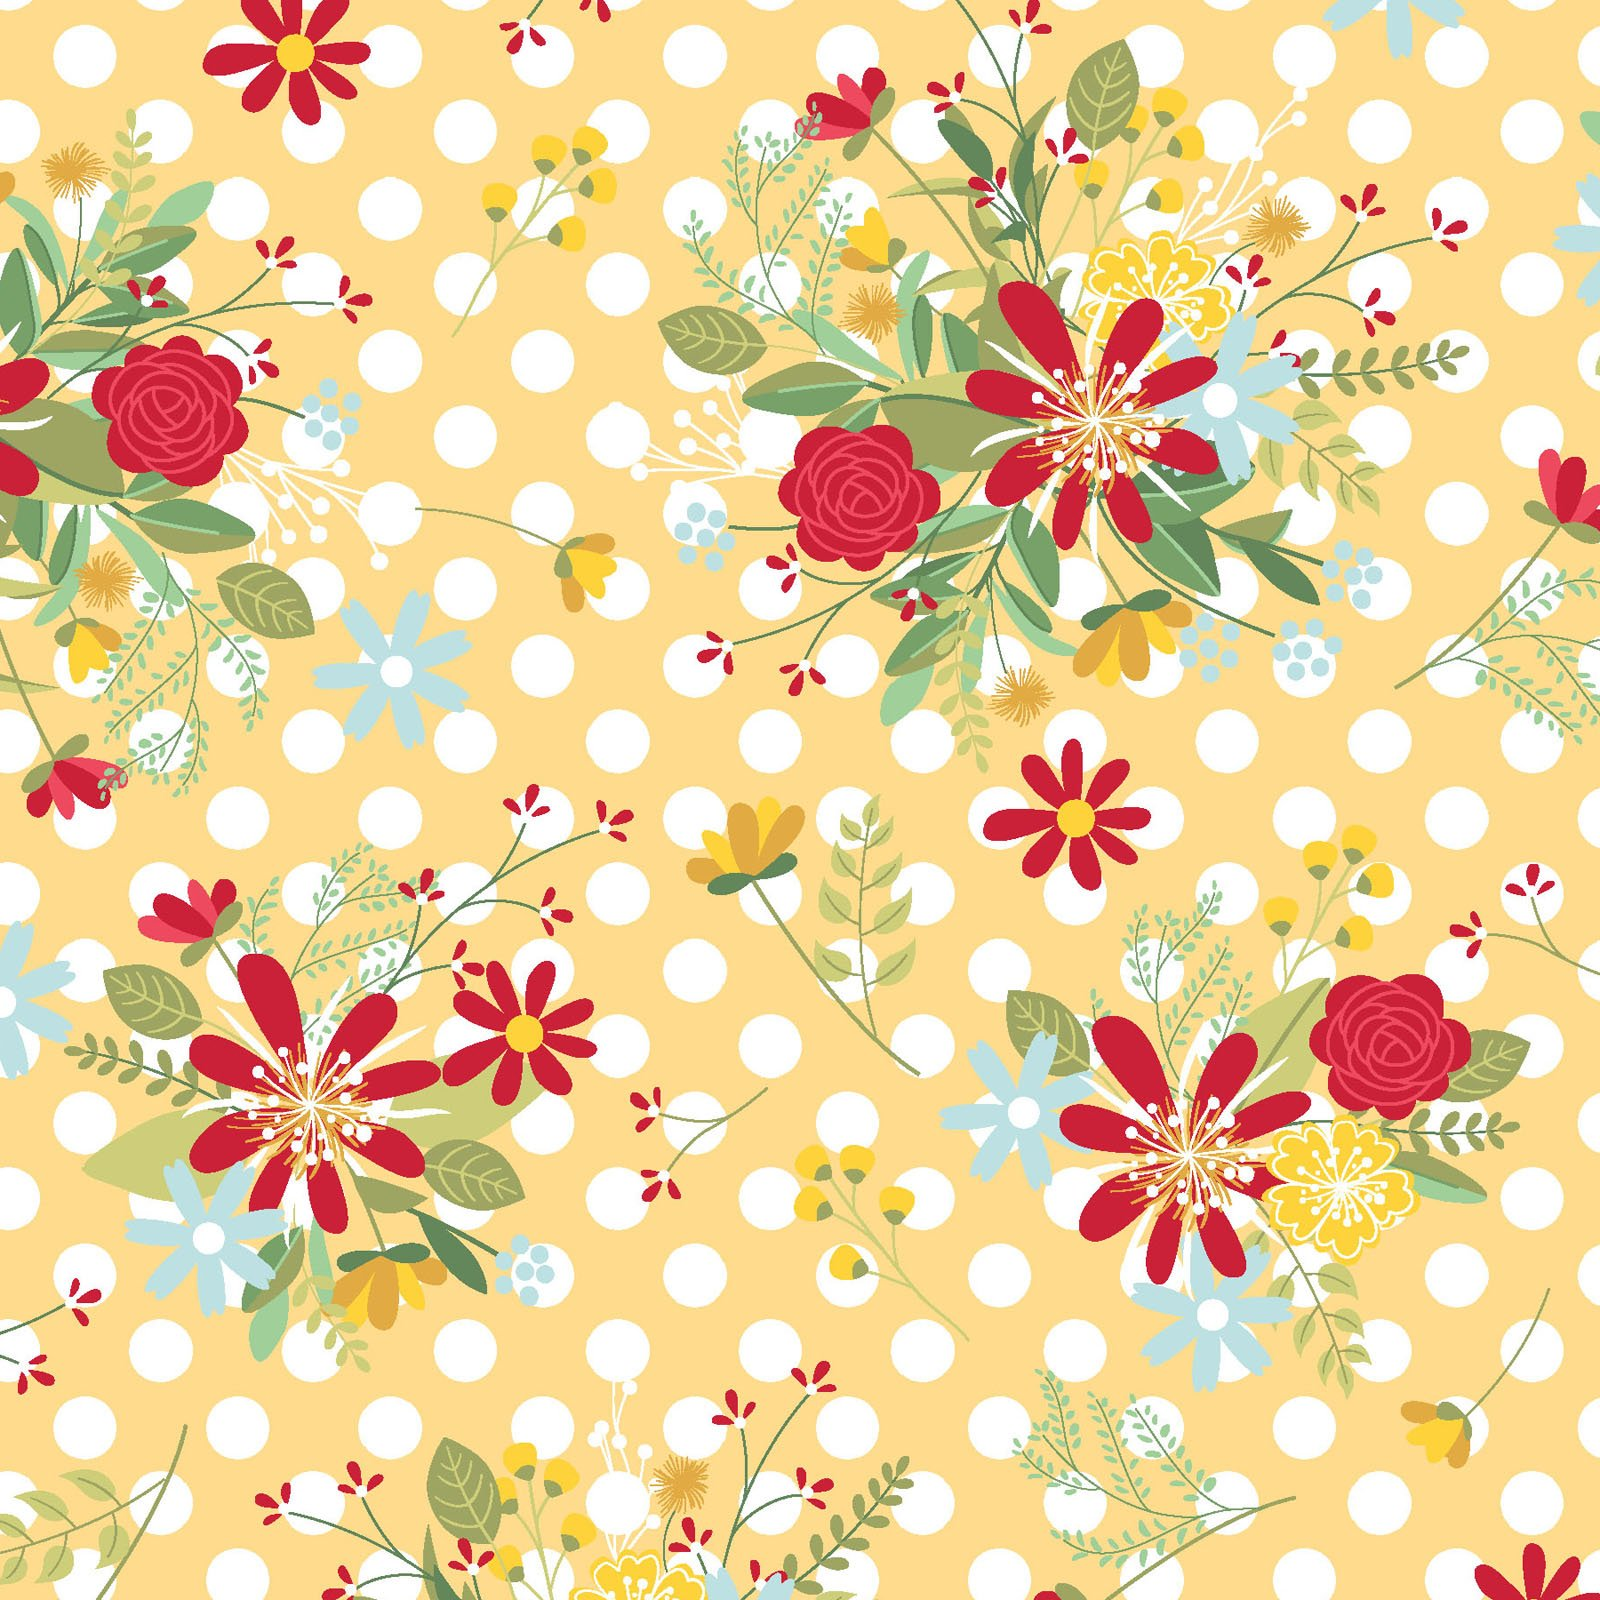 EESC-9904 S - RED, WHITE & BLOOM BY KIMBERBELL POLKA DOT FLOWER YELLOW - ARRIVING MARCH 2021